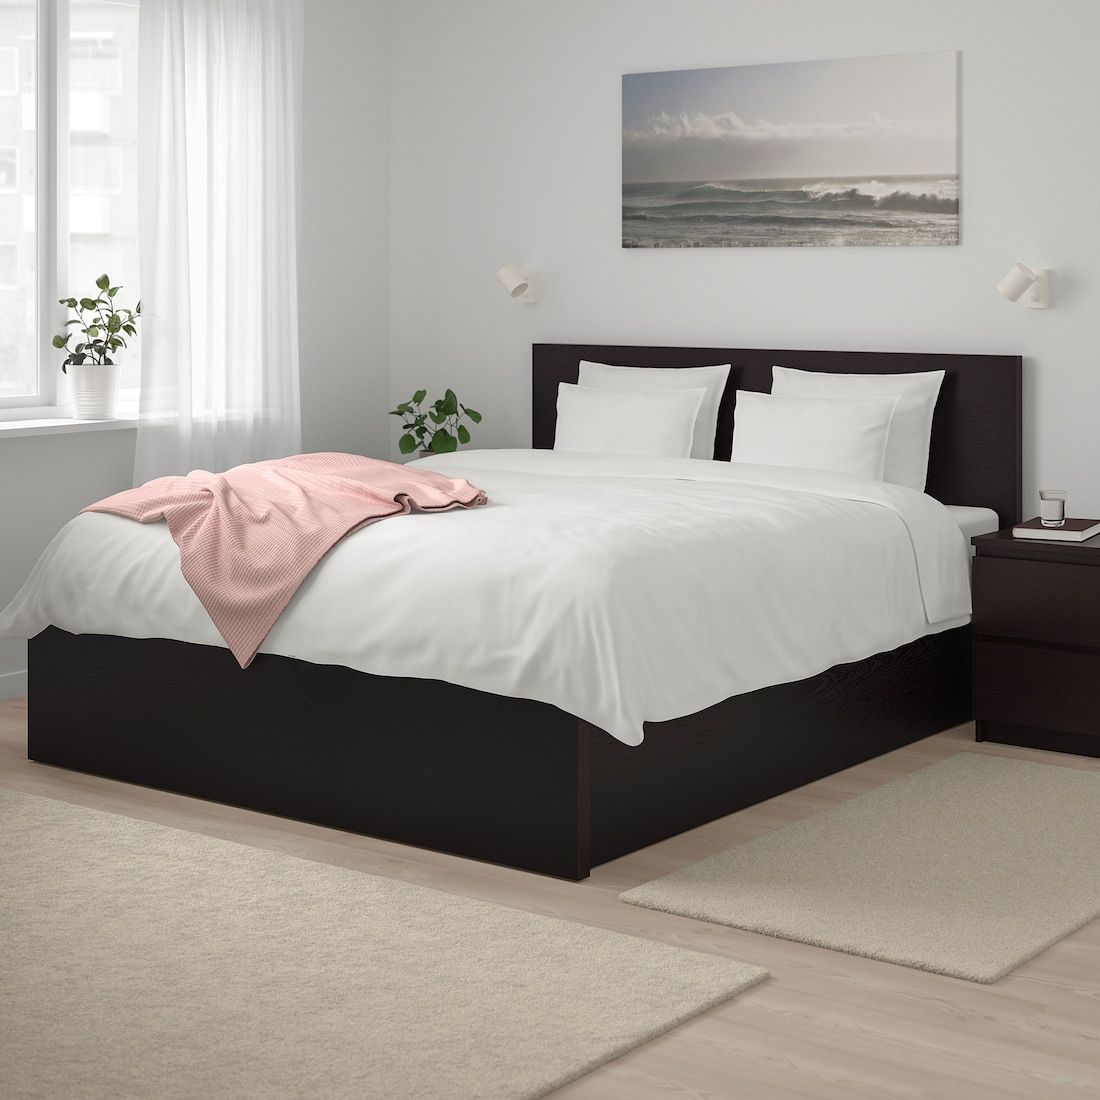 Malm Storage Bed Black Brown Queen Ikea Brown Furniture Bedroom Black Bedding Storage Bed